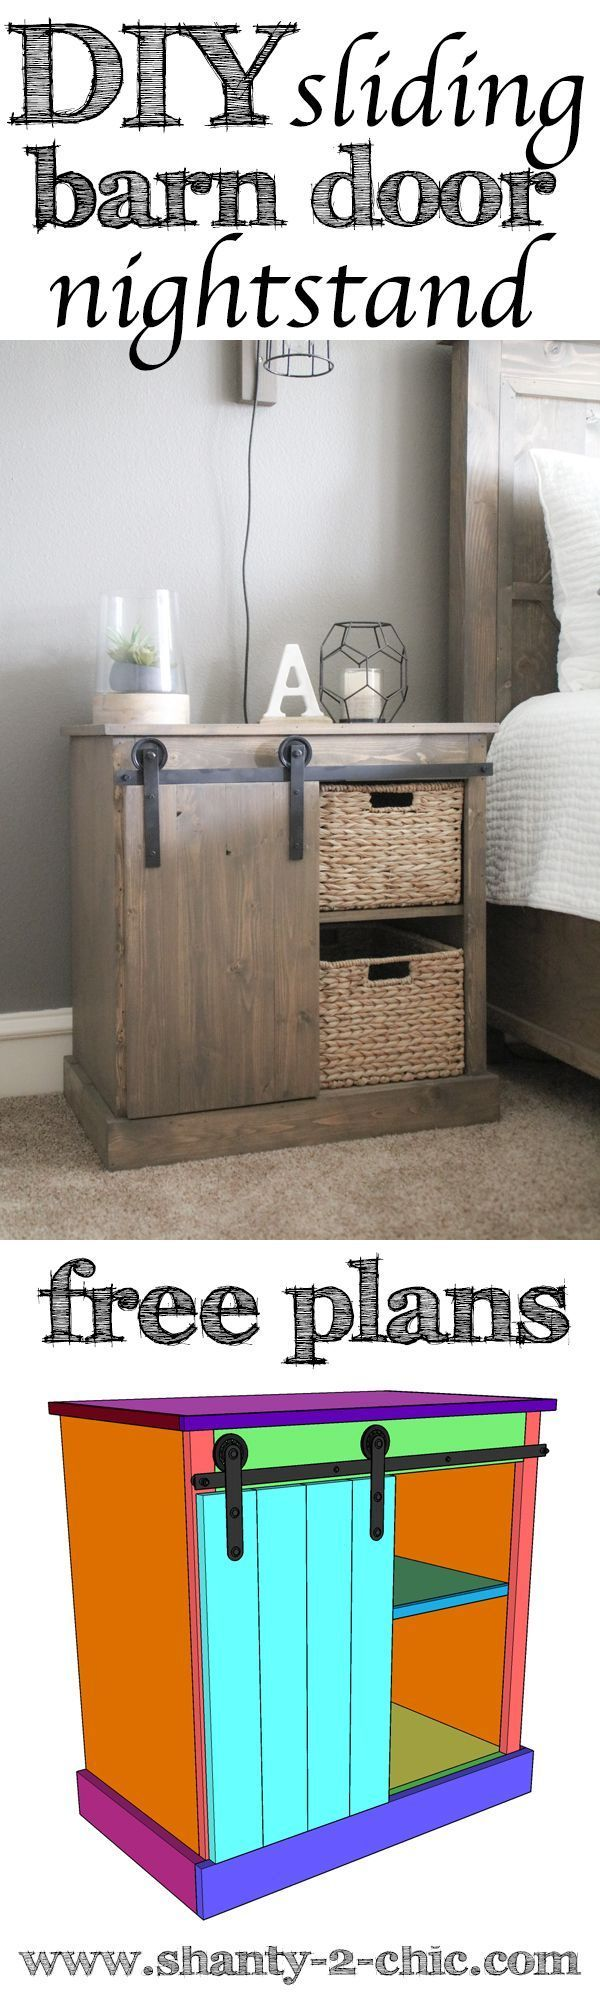 DIY Sliding Barn Door Nightstand plans and how-to video! Learn to construct this…